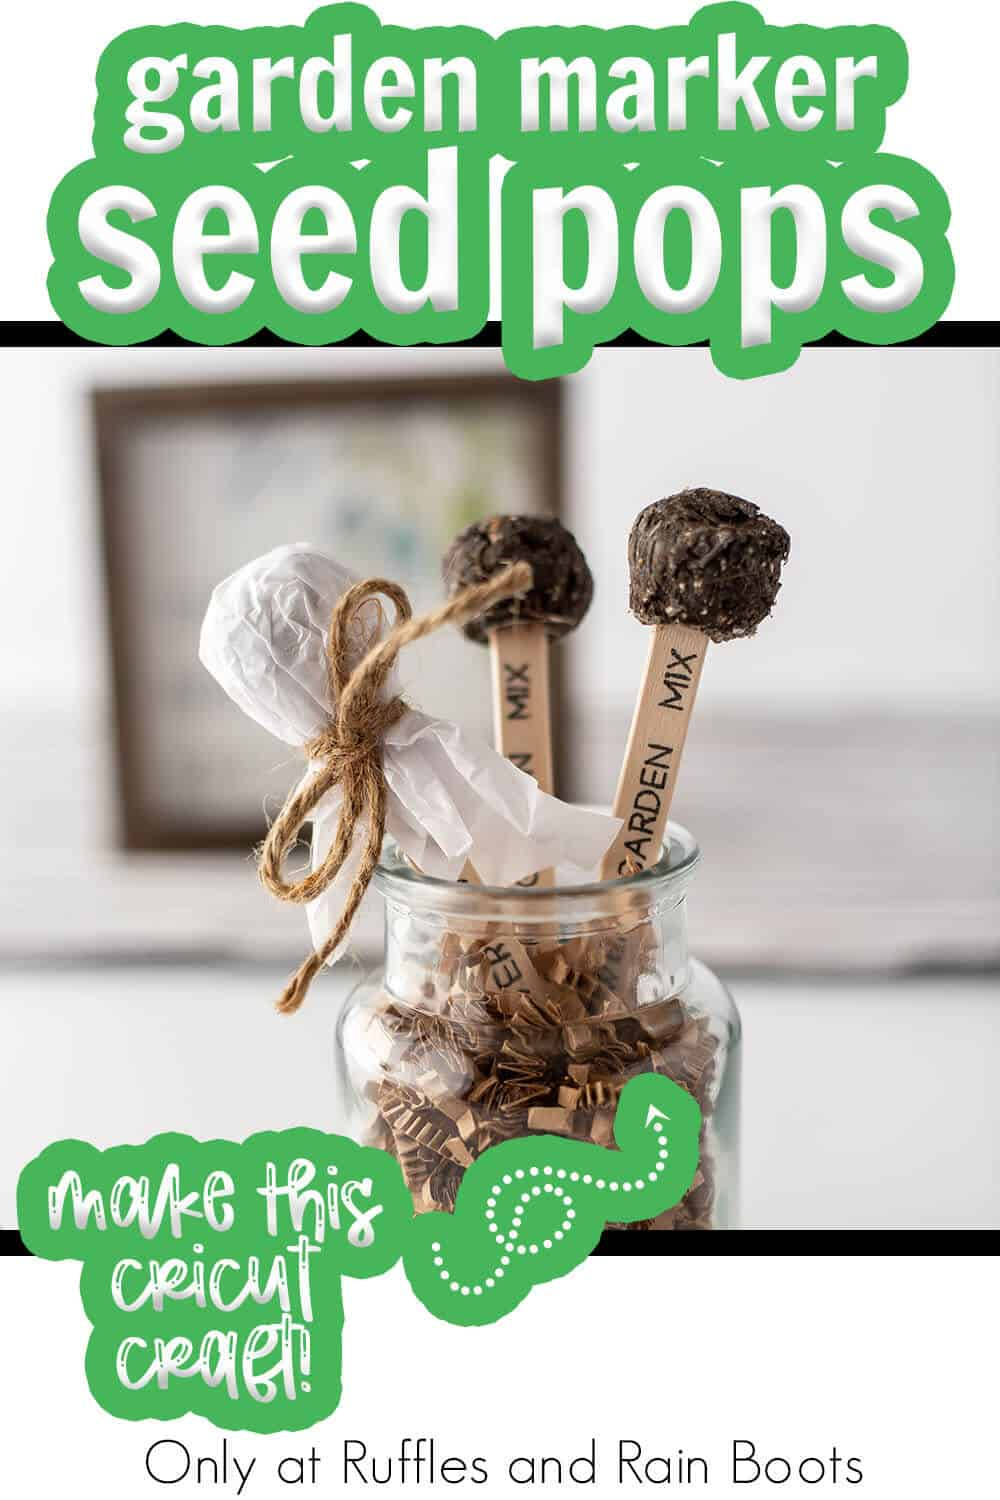 seed bomb and garden marker cricut craft with text which reads garden marker seed pops make this cricut craft